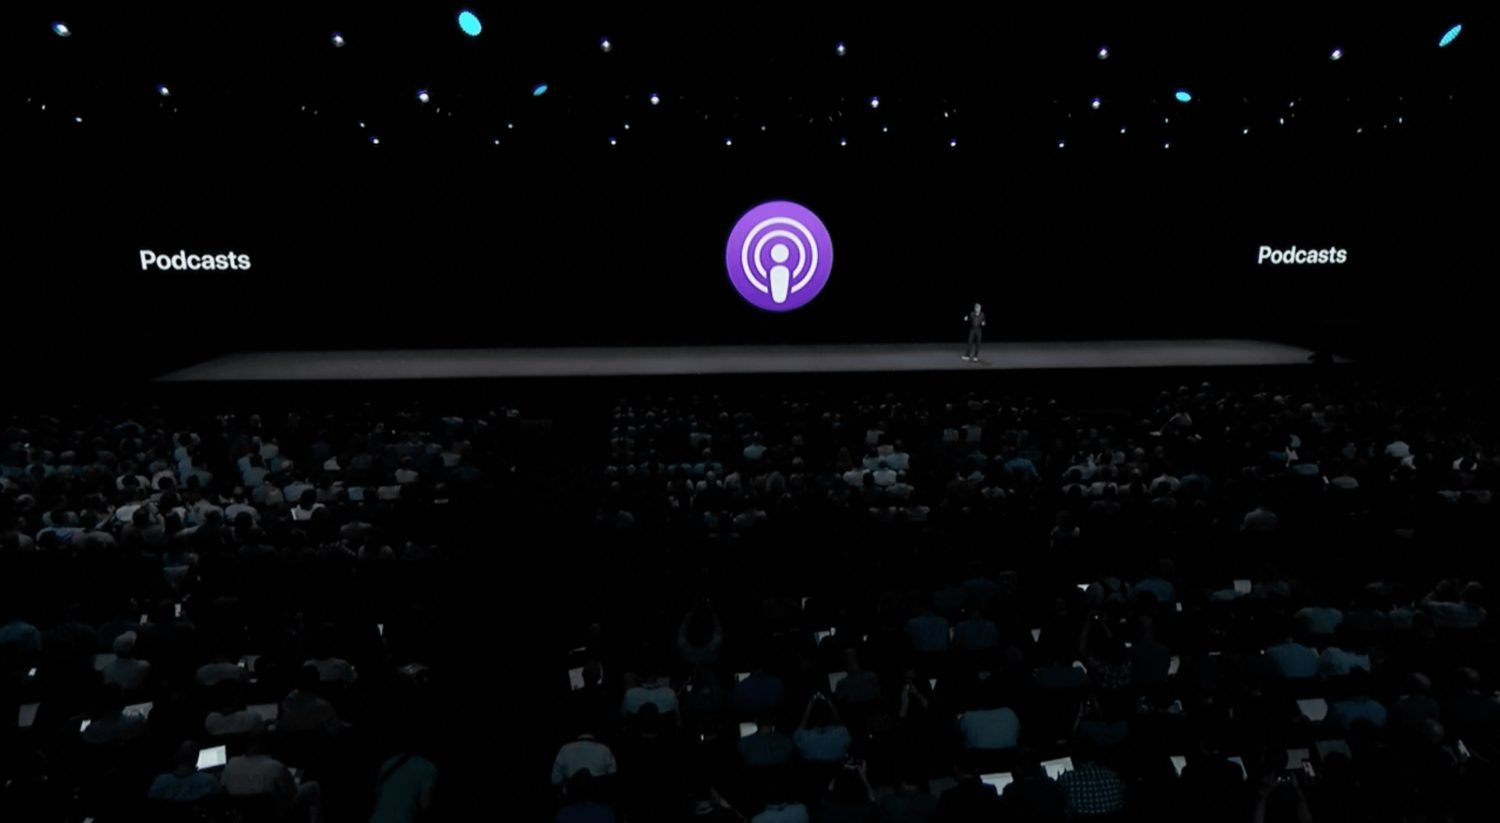 Podcast App Introduce In watchOS 5